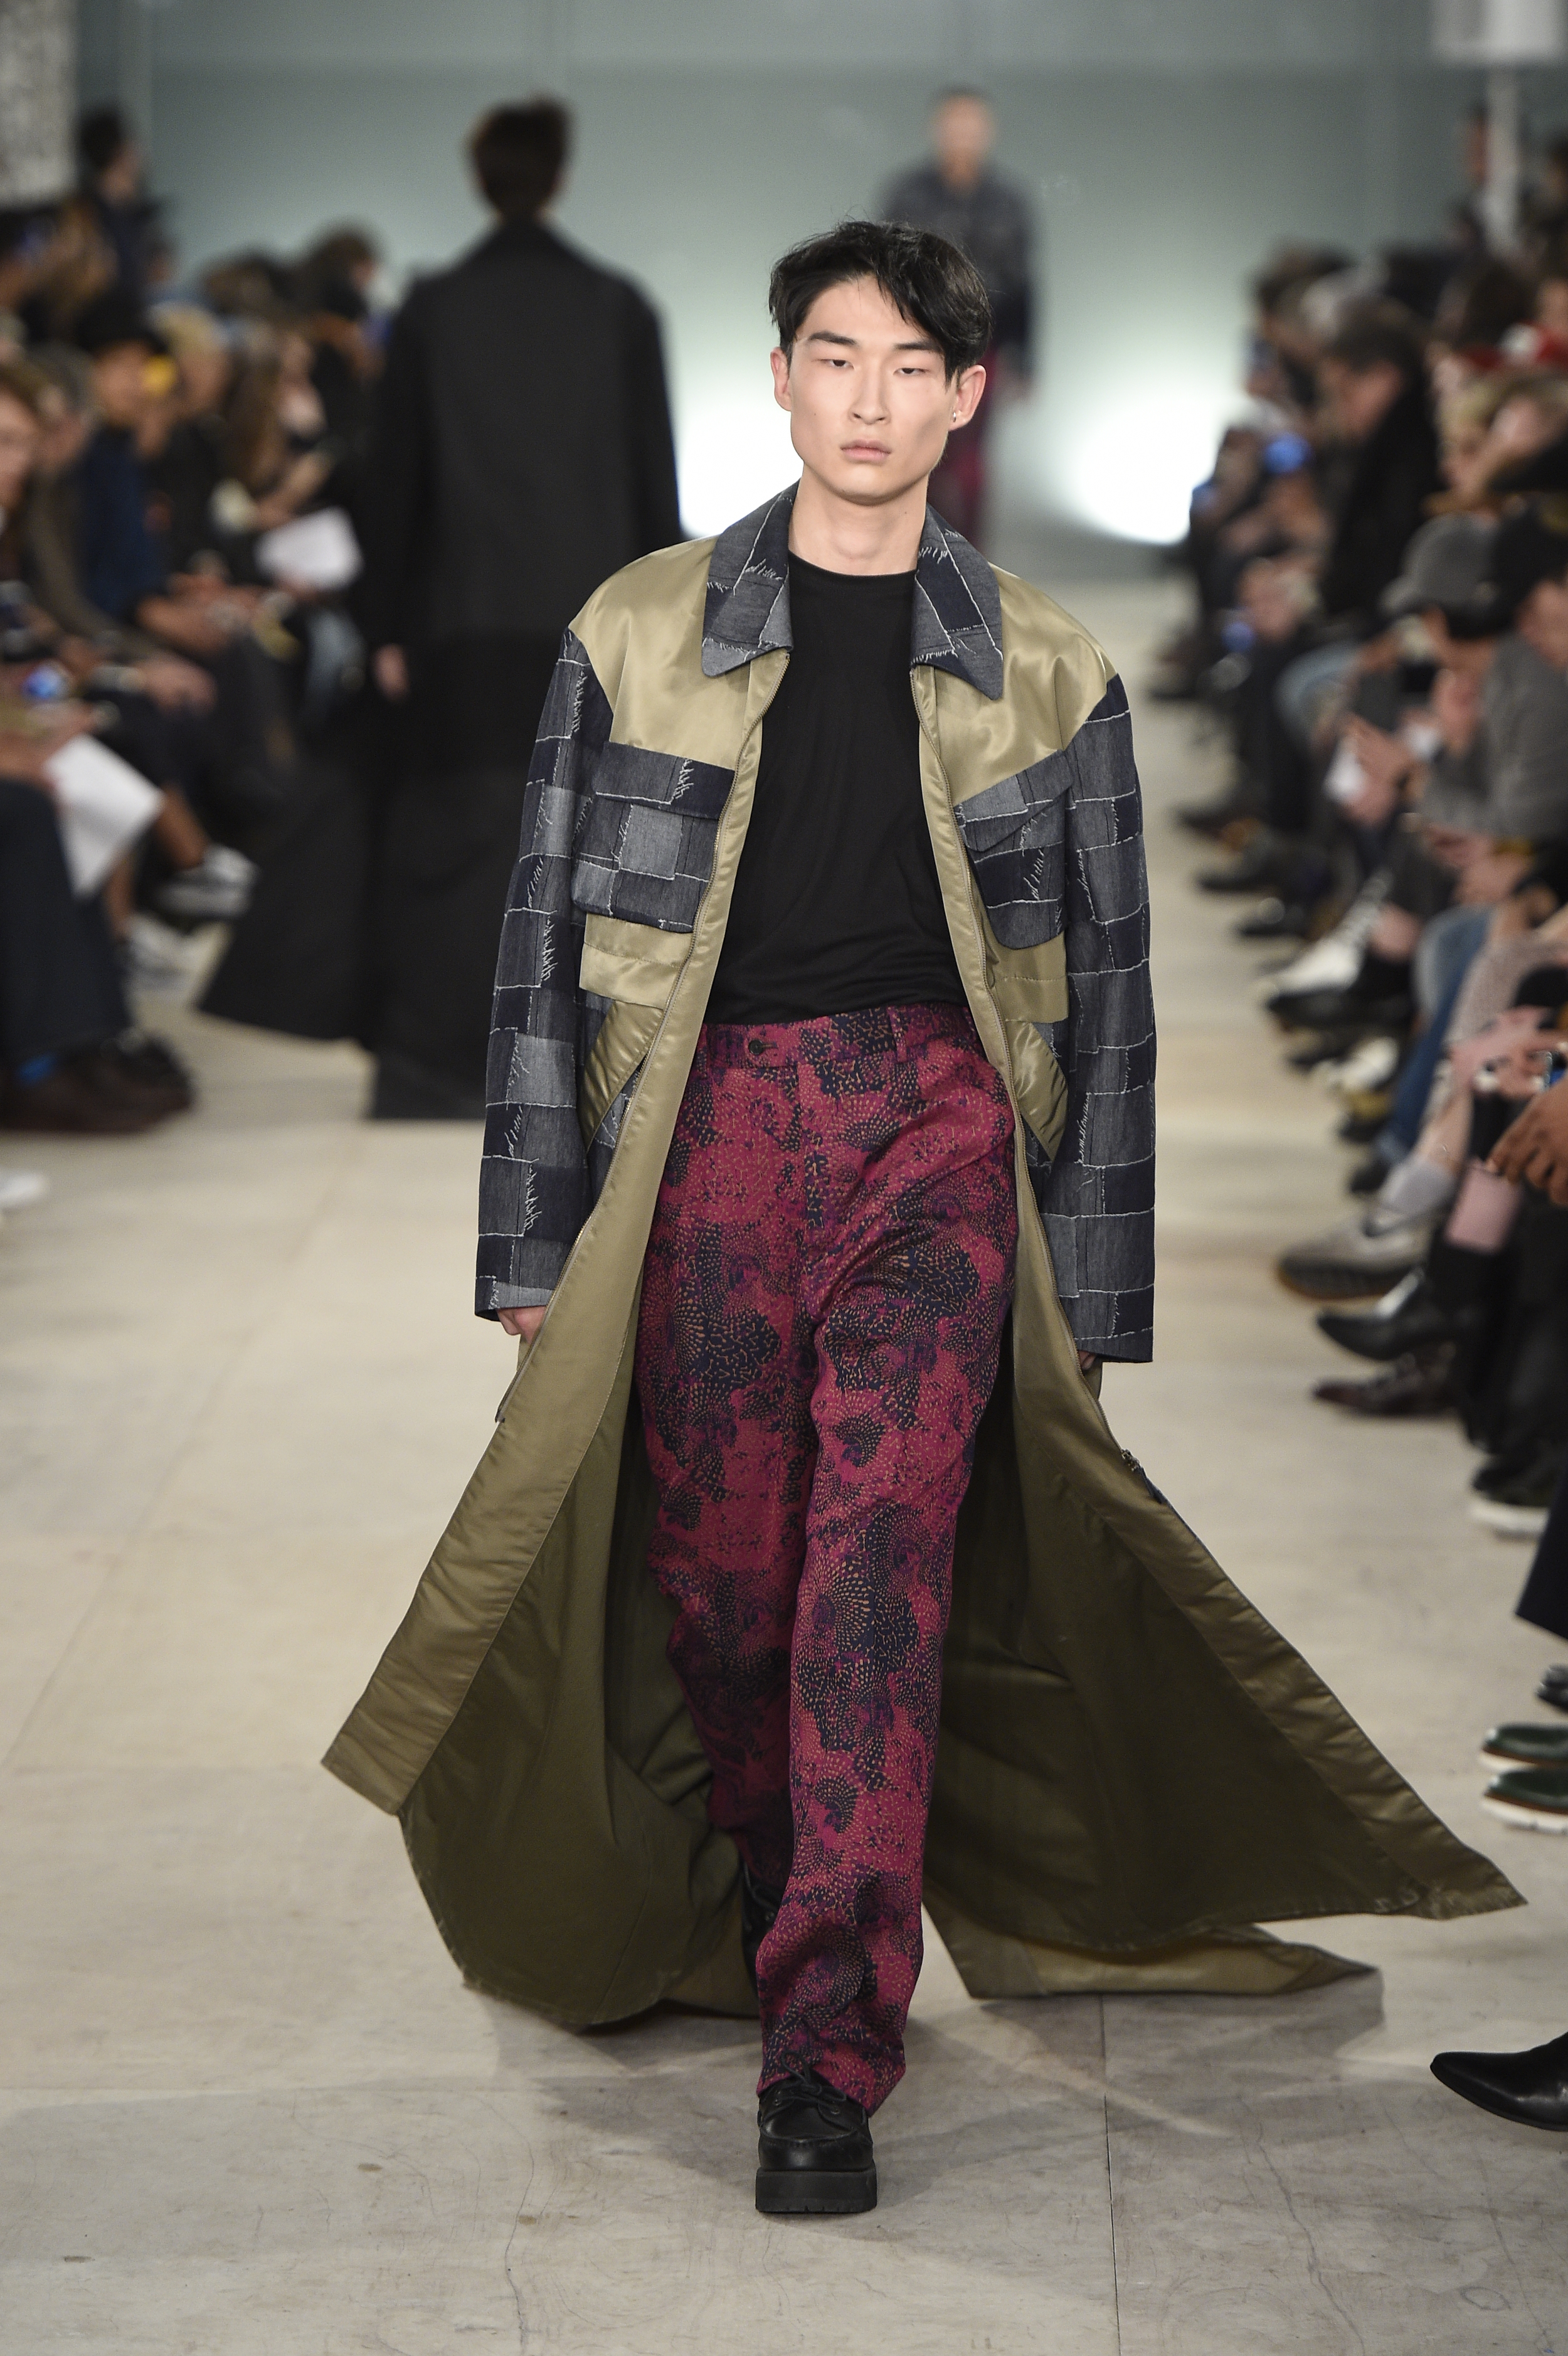 Fishtail Parkers - Casely Hayford